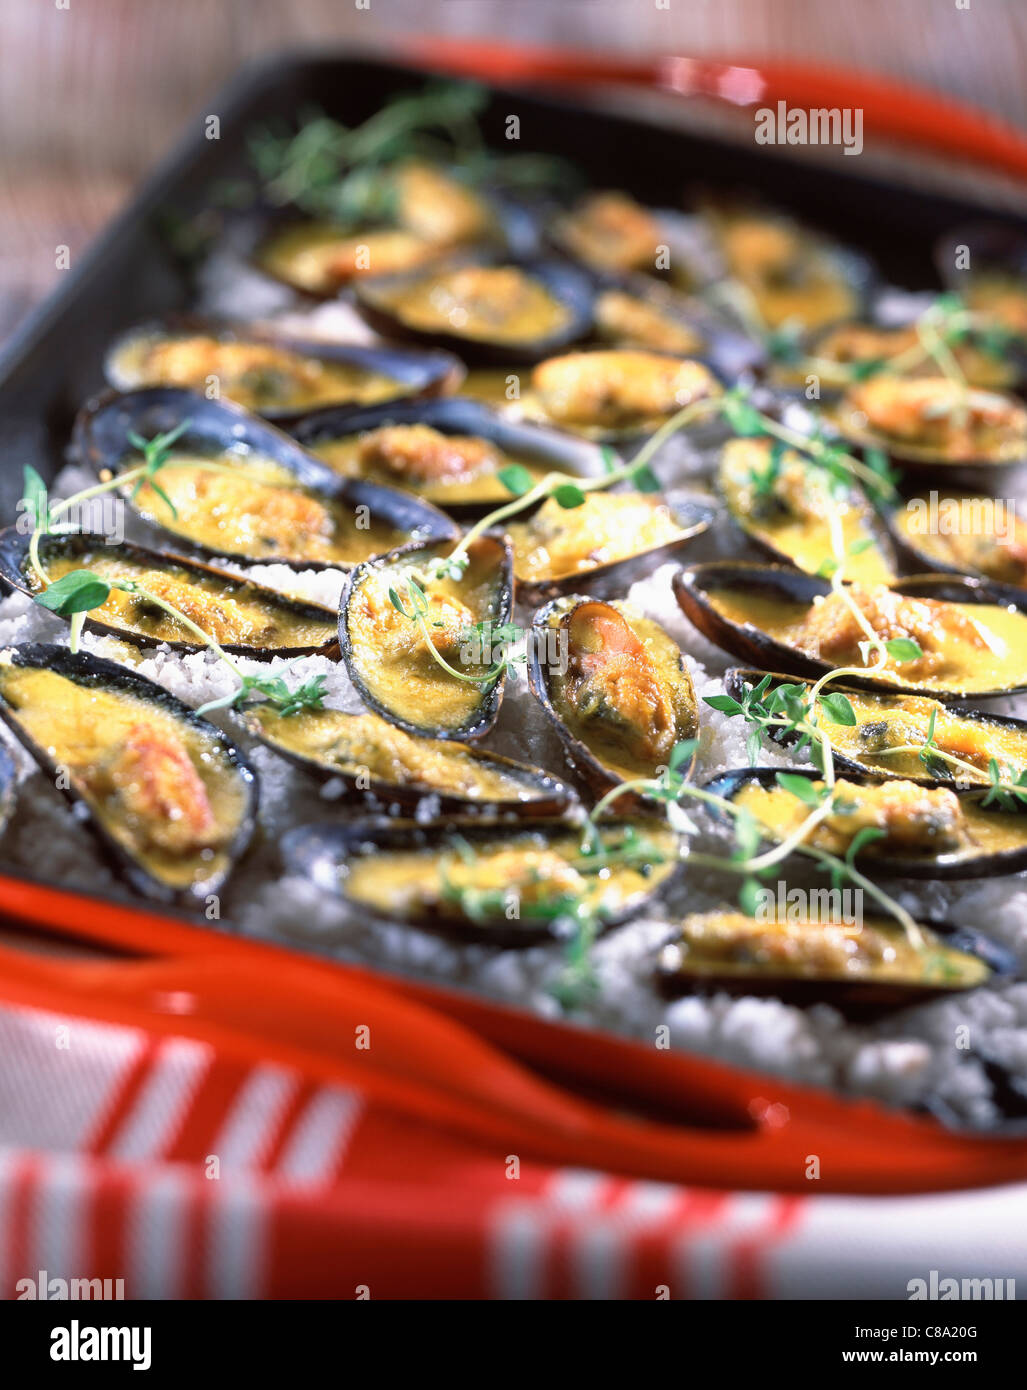 Mussels cooked in white wine, parsley and shallots, with curry - Stock Image